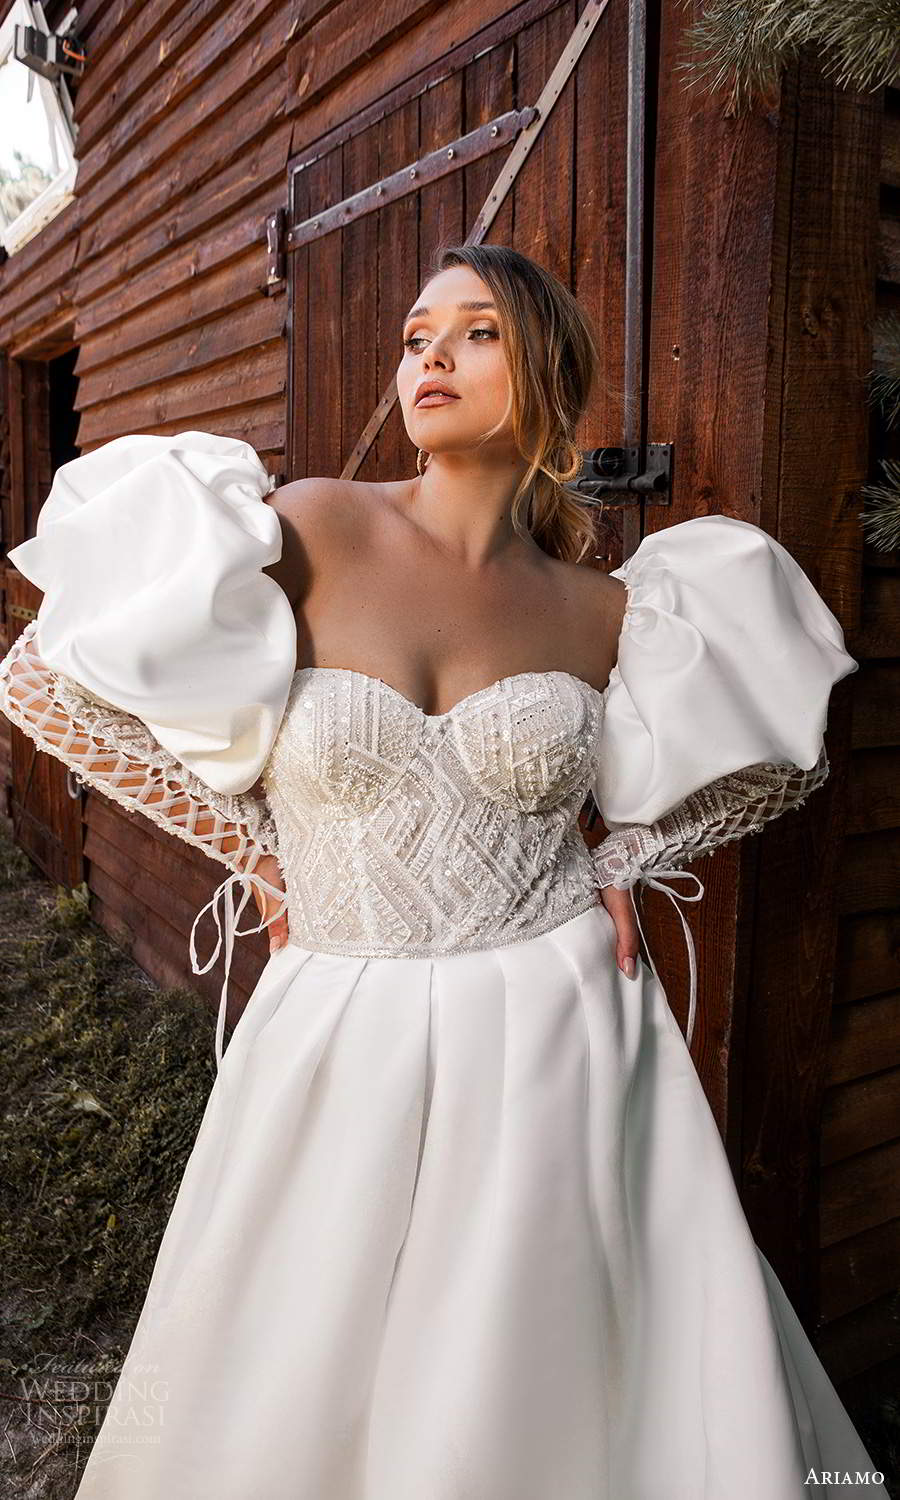 ariamo 2021 plus bridal detached long puff sleeves strapless sweetheart neckline embellished bodice a line ball gown wedding dress chapel train (3) zv